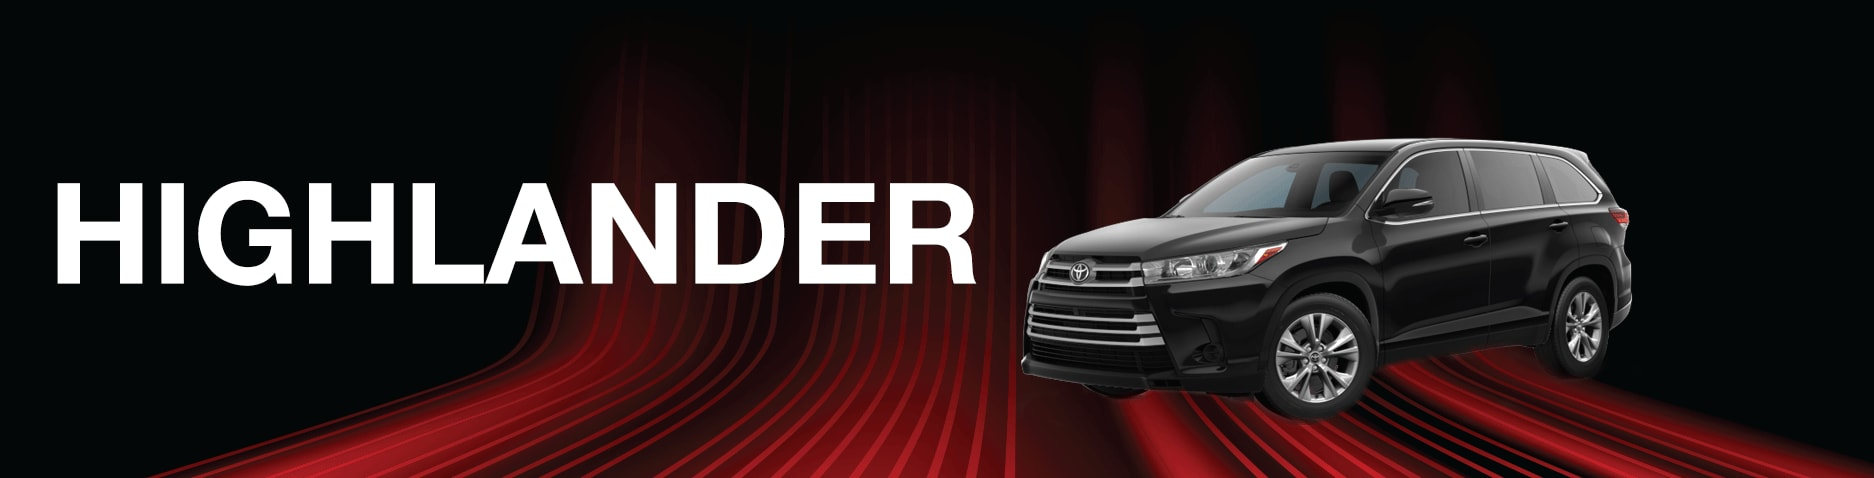 201Toyota Highlander Review and Comparison in Albuquerque, NM